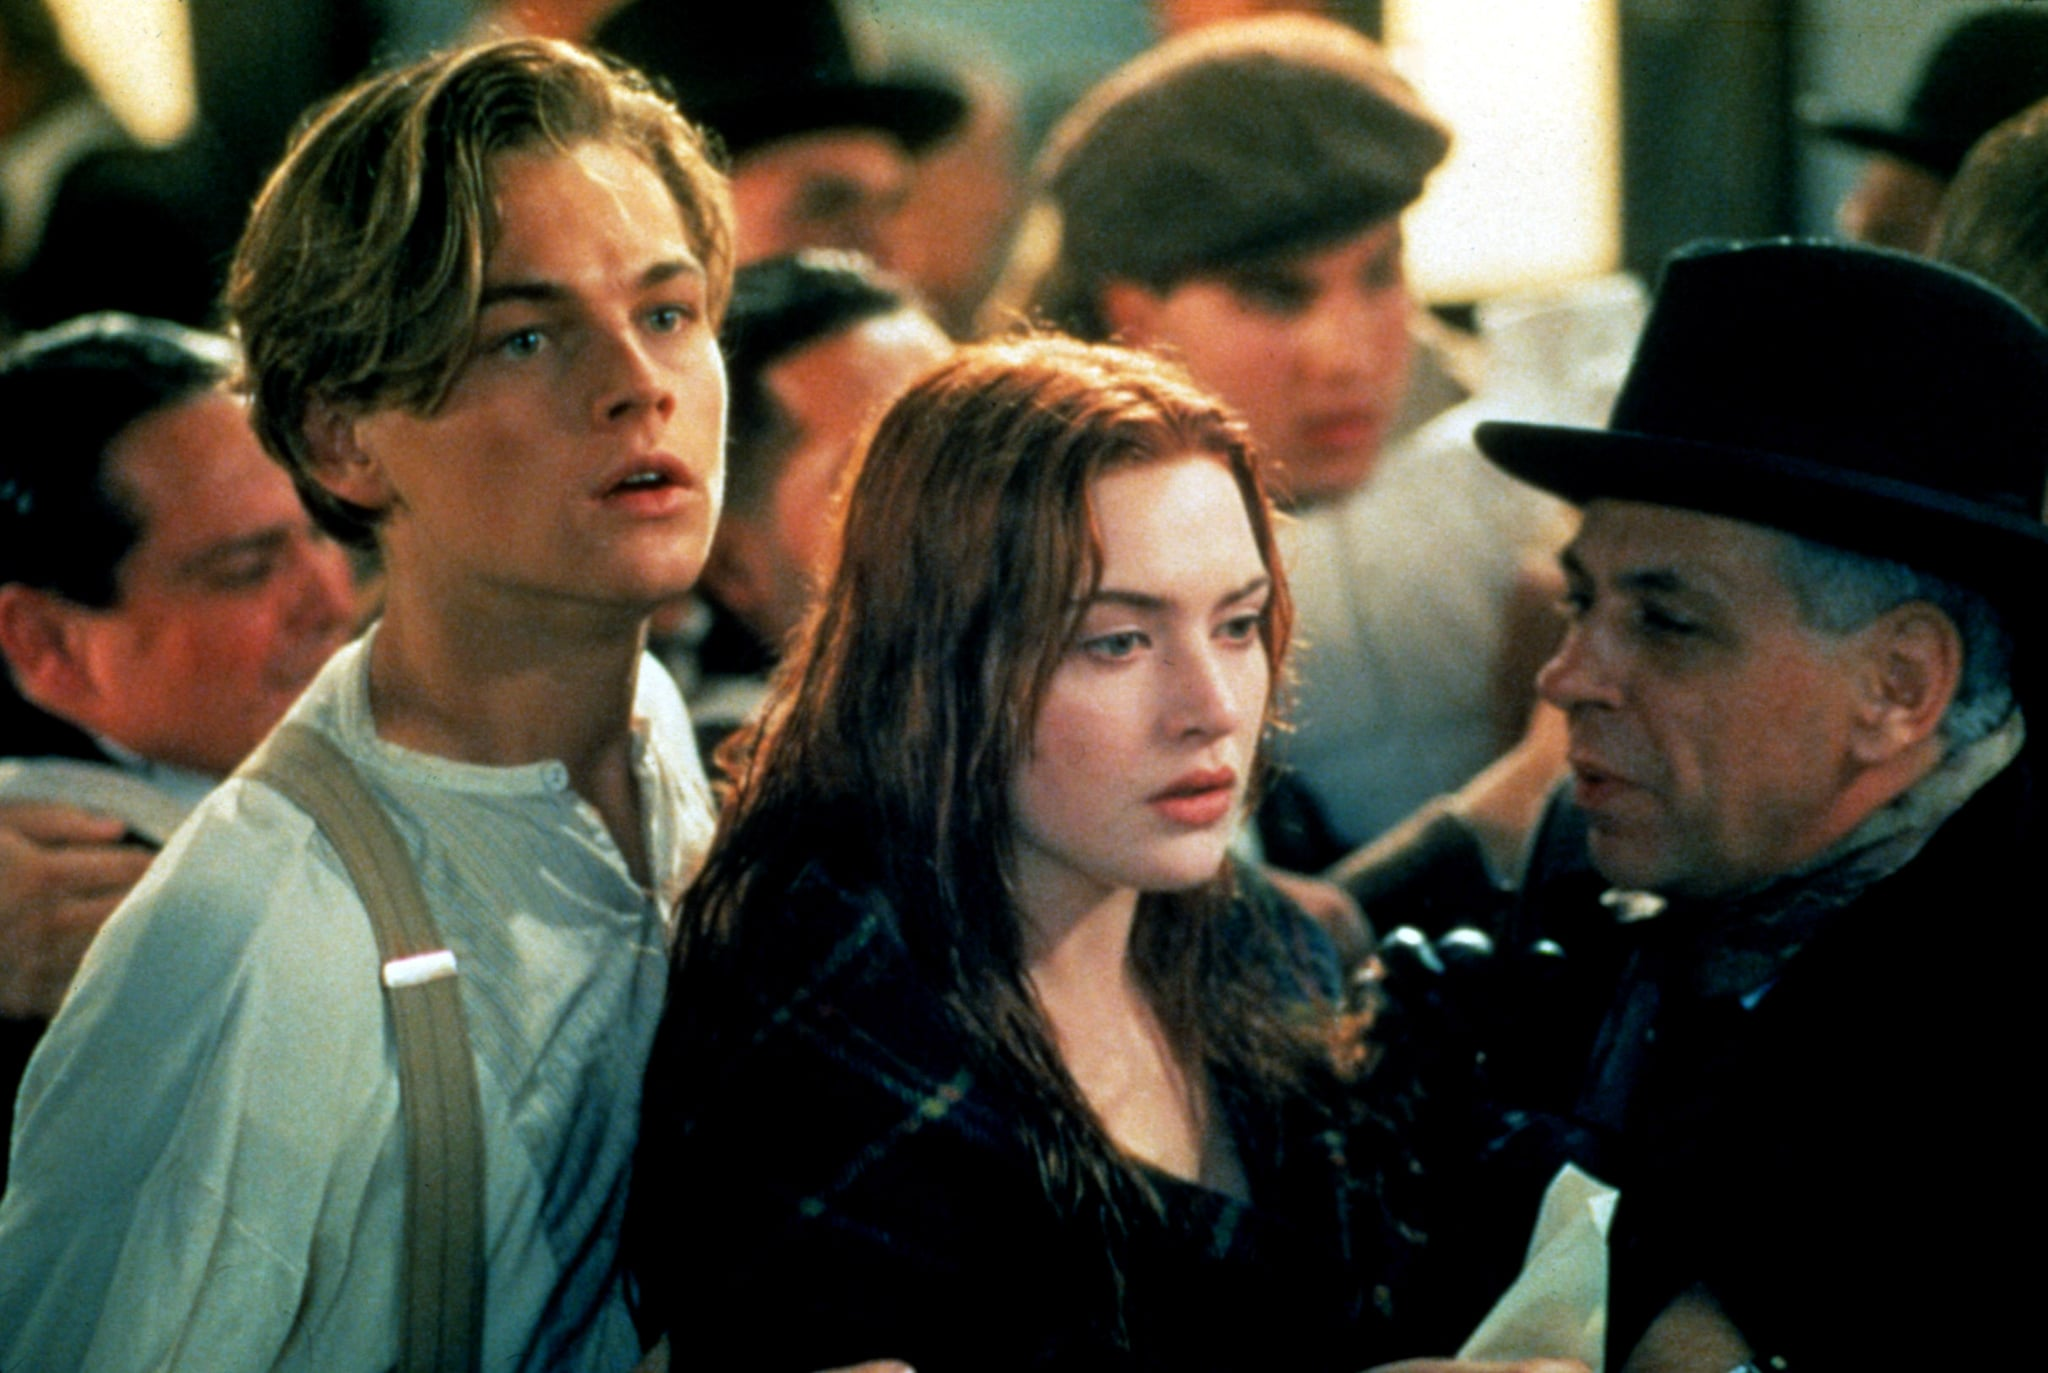 TITANIC, Leonardo Di Caprio, Kate Winslet, 1997, TM & Copyright (c) 20th Century Fox Film Corp. All rights reserved.